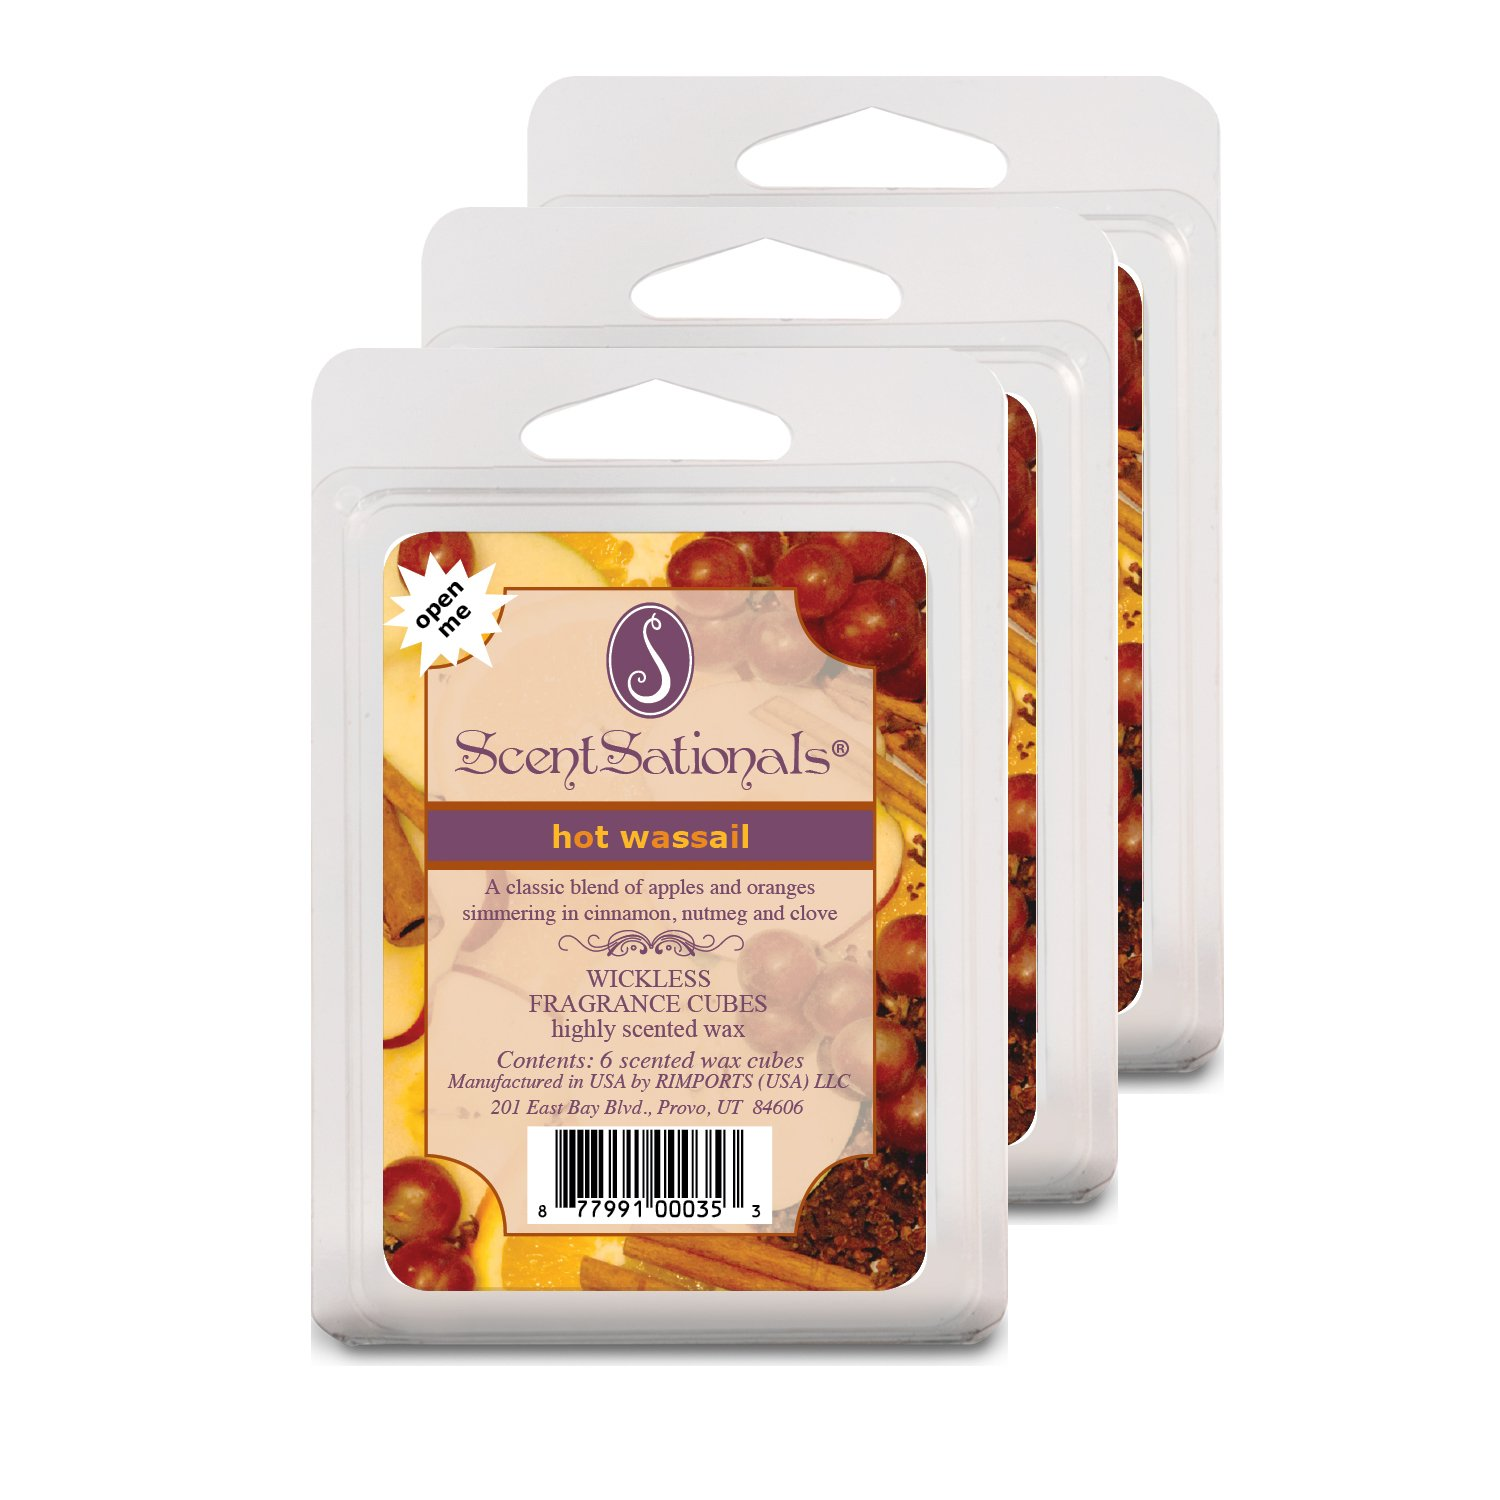 Hot Wassail Scented Wax Cubes For Warmers 3 Pack